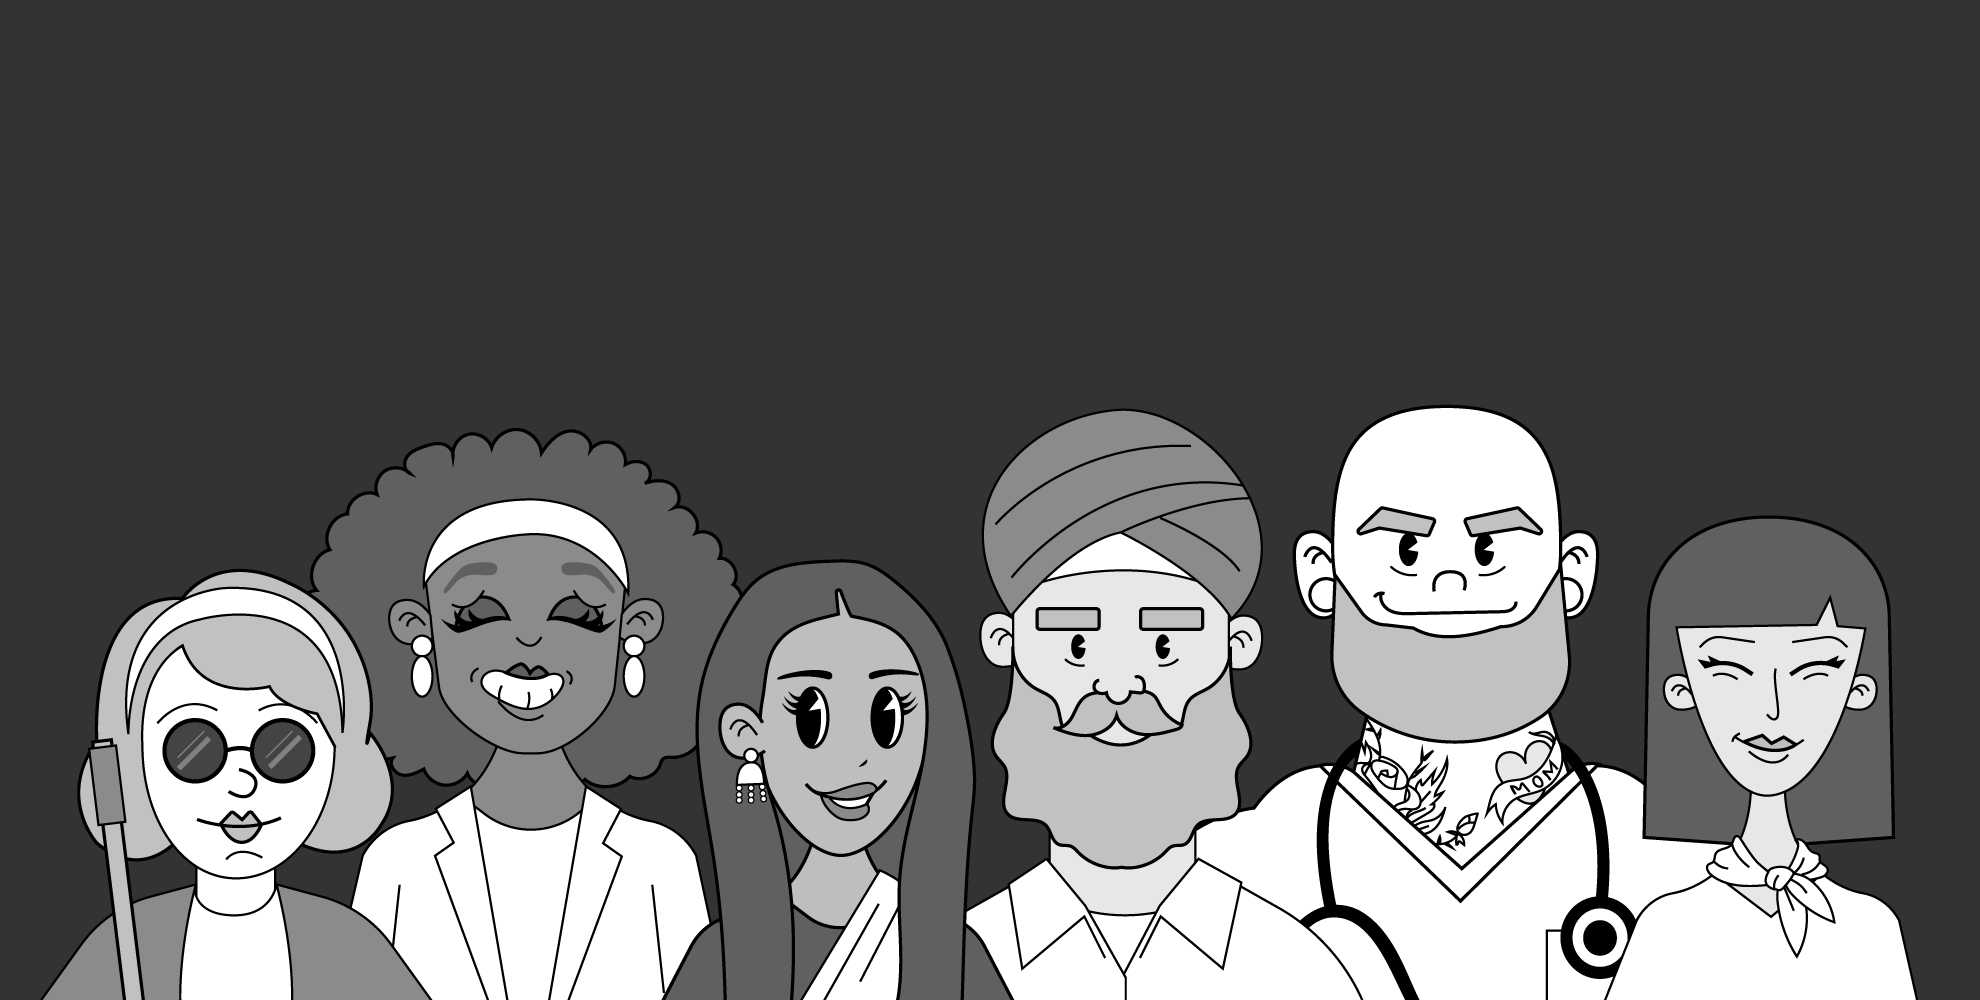 An illustration with a diverse set of people including a blind woman, a sikh man, a doctor, and several different women.